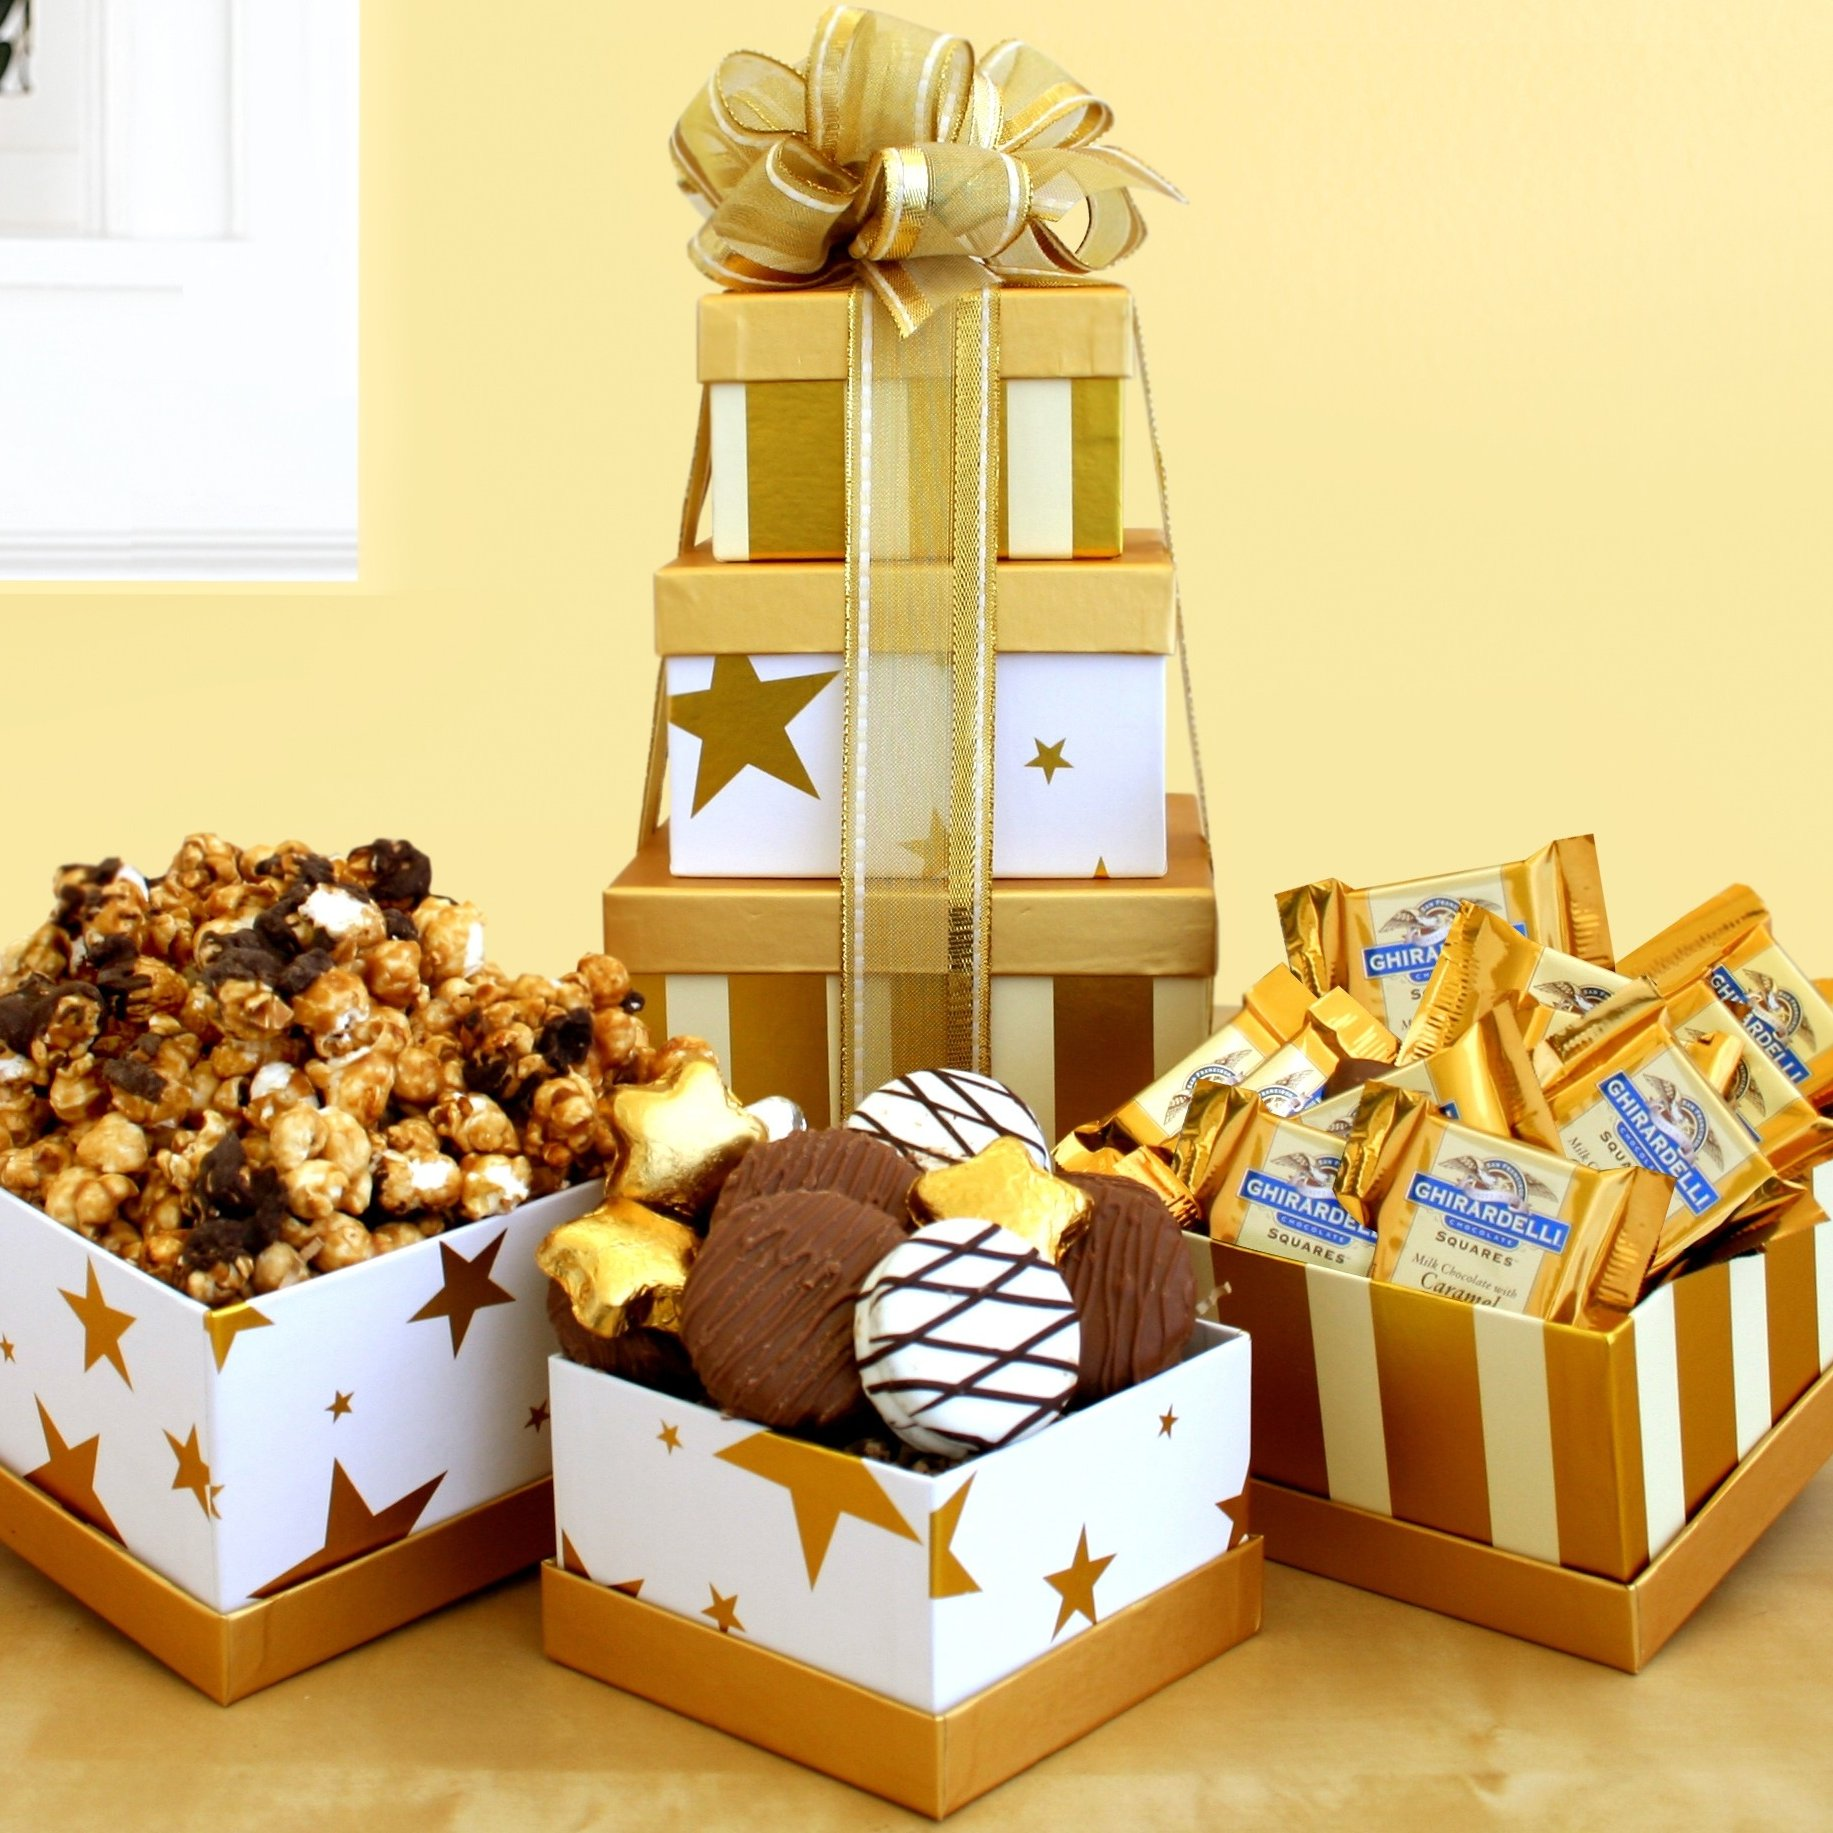 Image 0 of Stars & Stripes: Gourmet Gift Tower